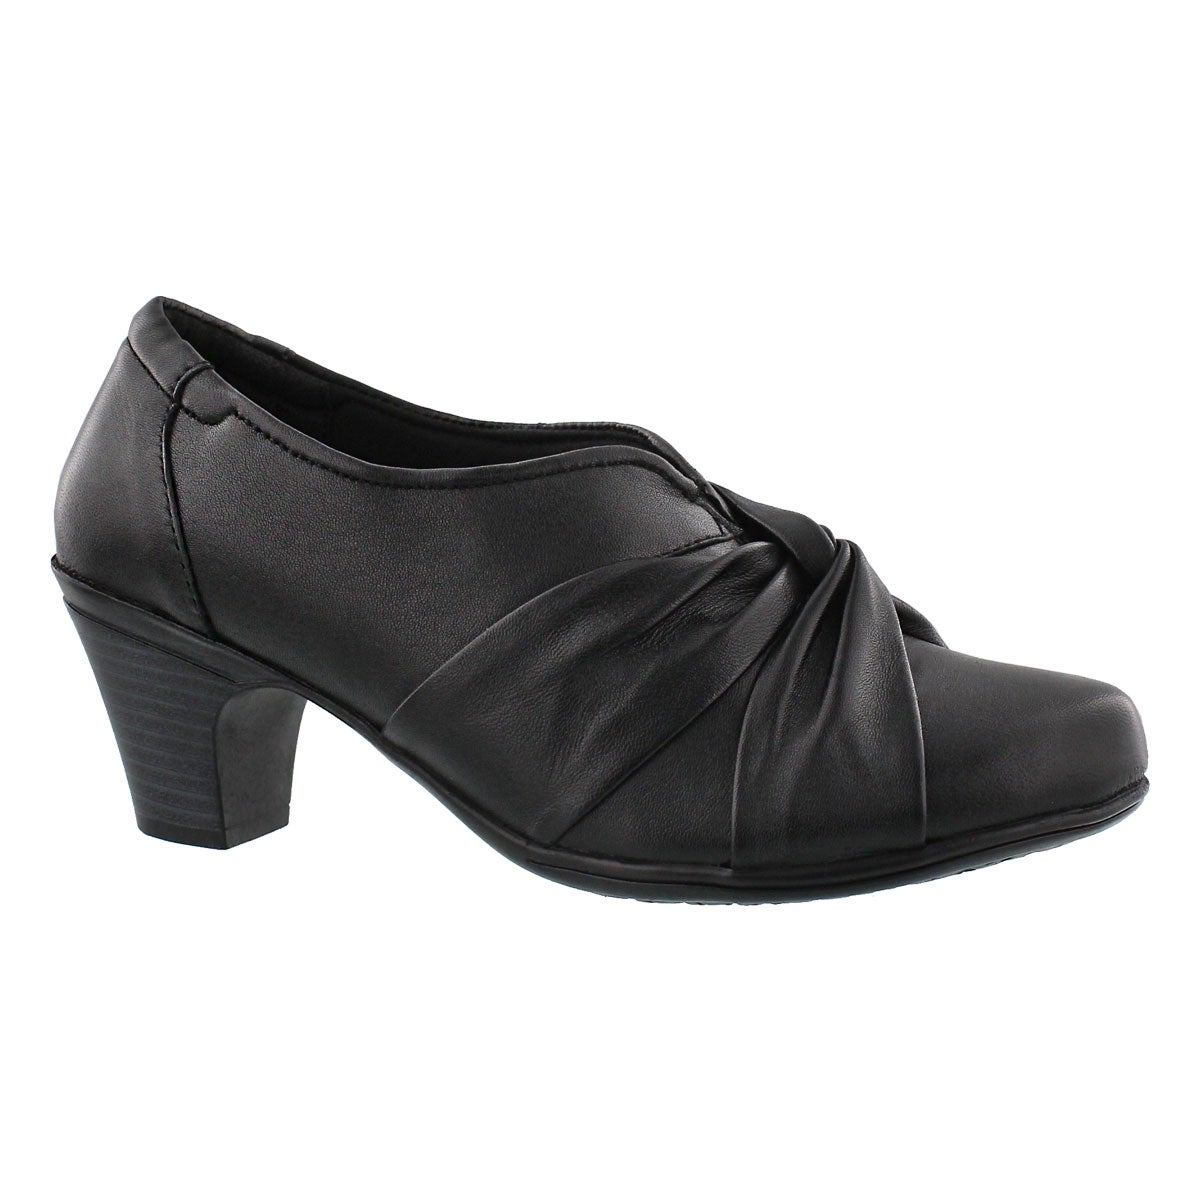 Lds Danielle black dress heel- wide